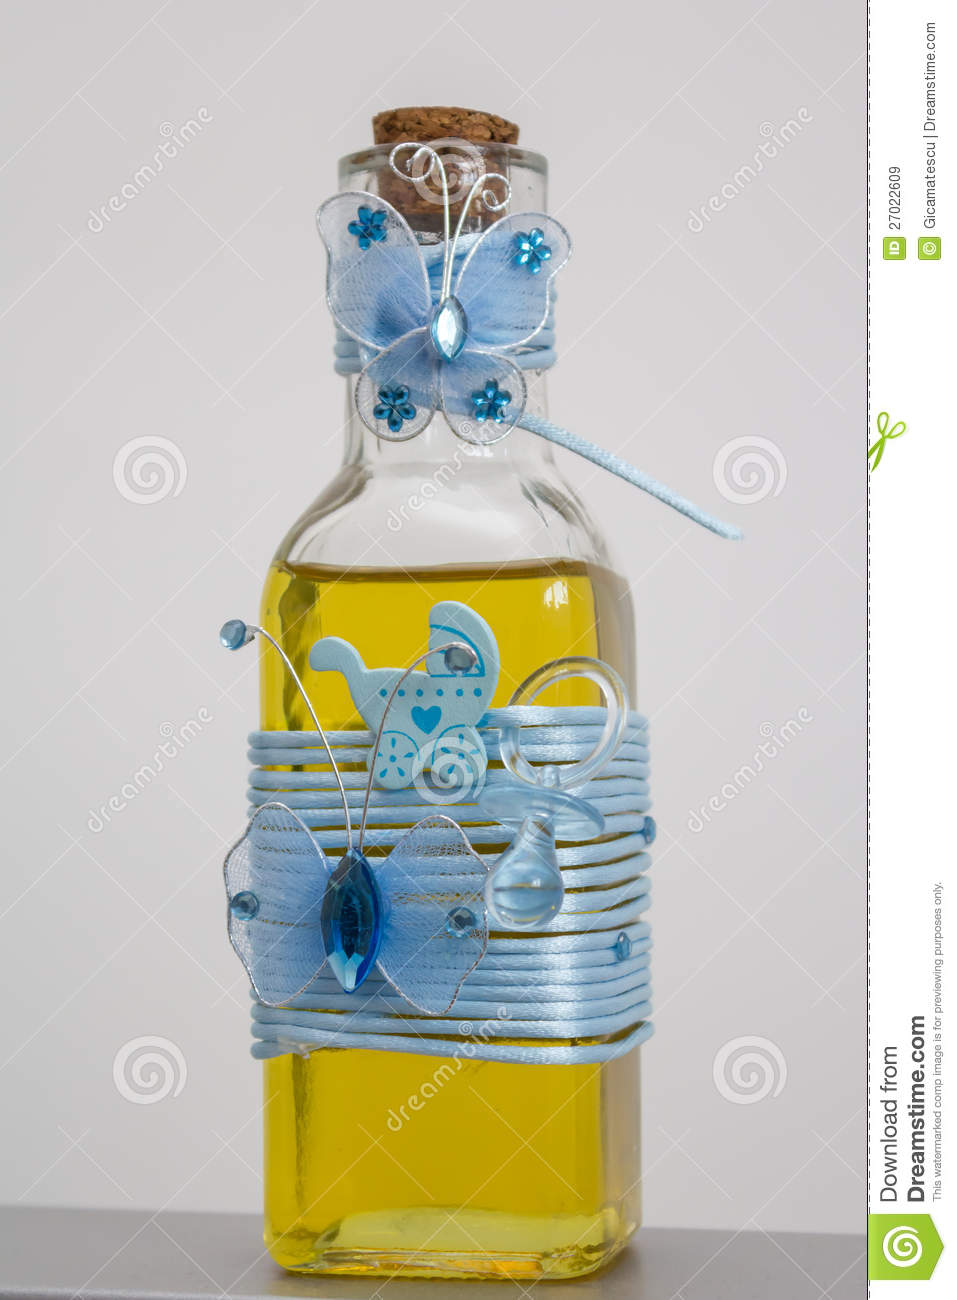 bottle with oil for christening royalty free stock images